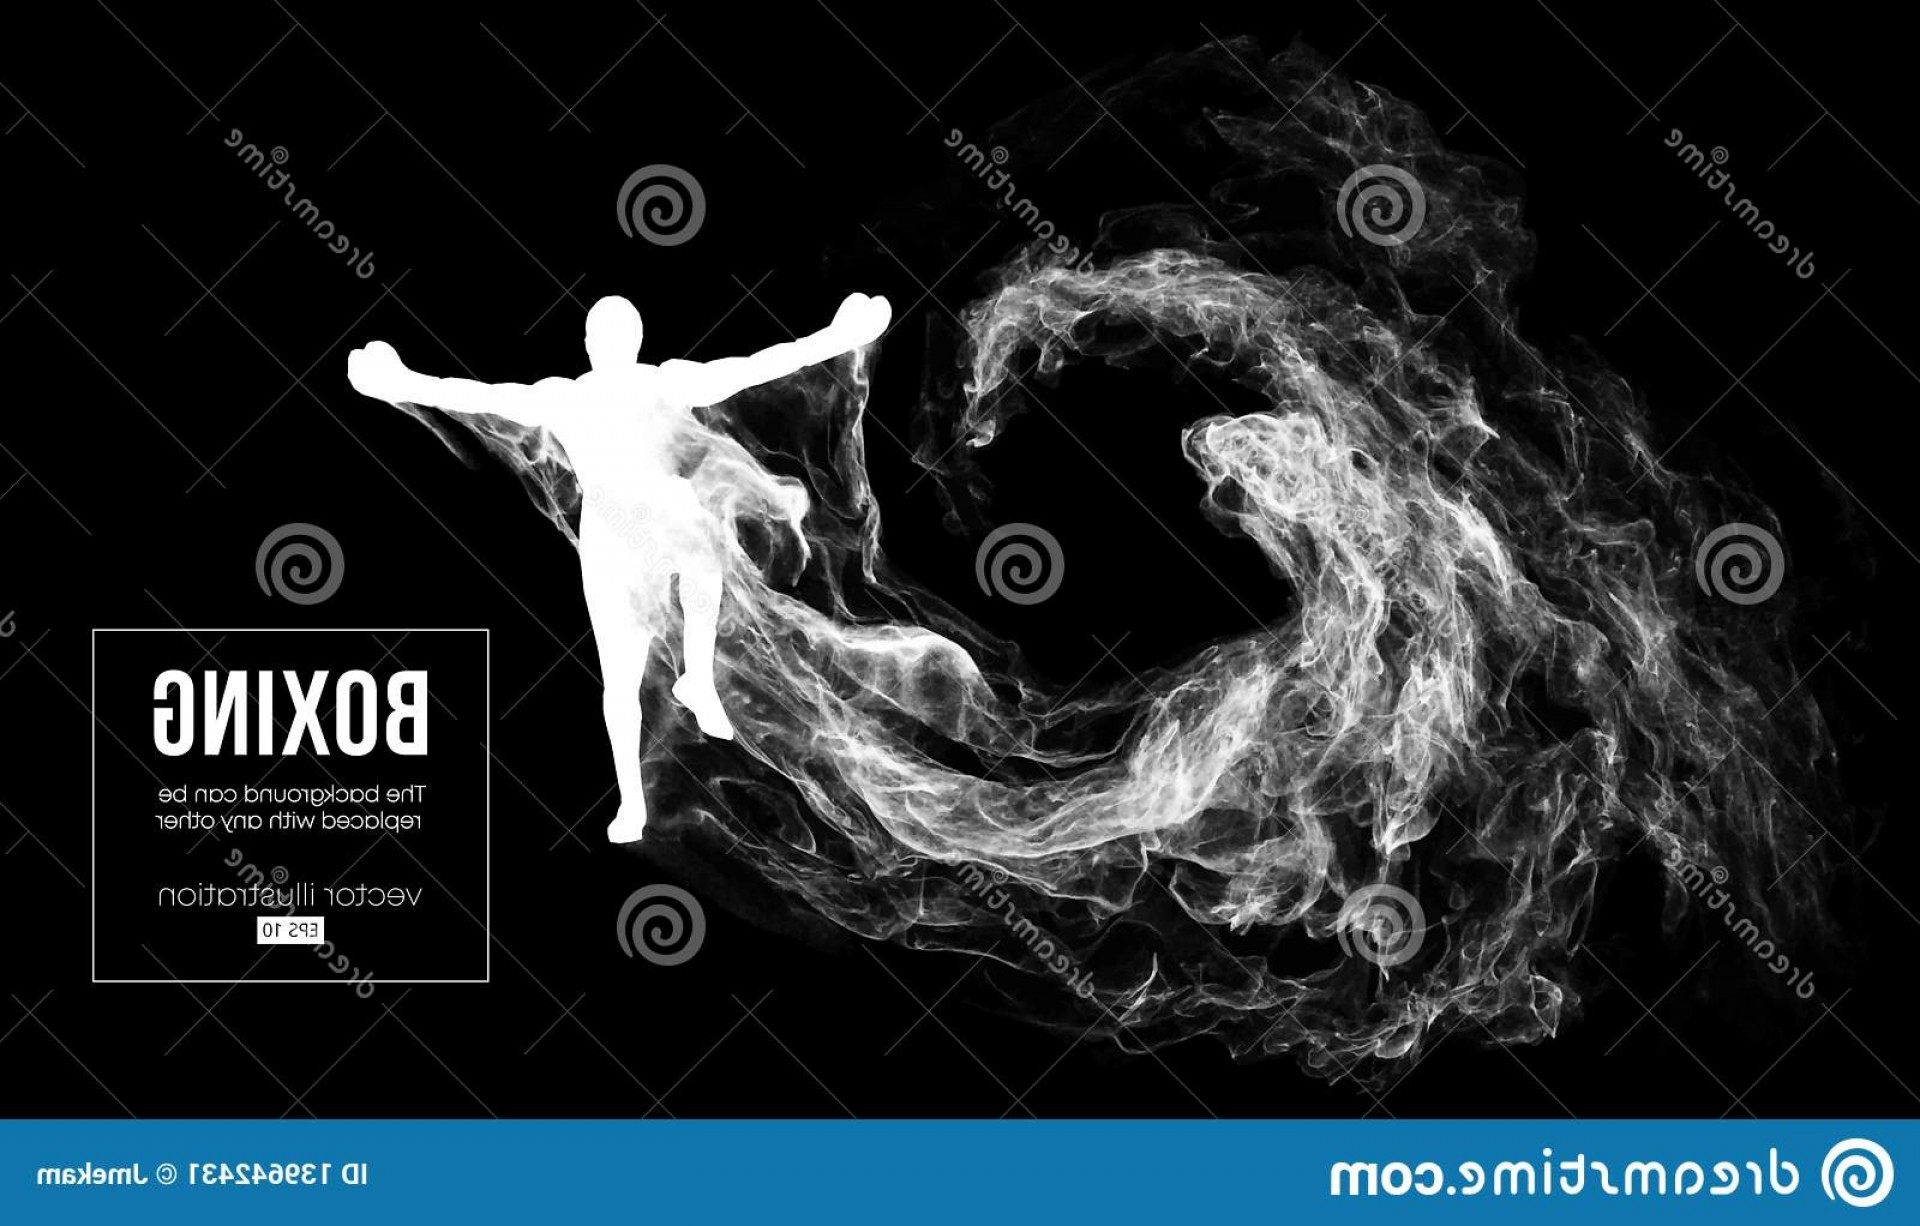 UFC Kick Vector: Abstract Silhouette Boxer Mma Ufc Fighter Dark Black Background Winner Vector Illustration Particles Dust Image